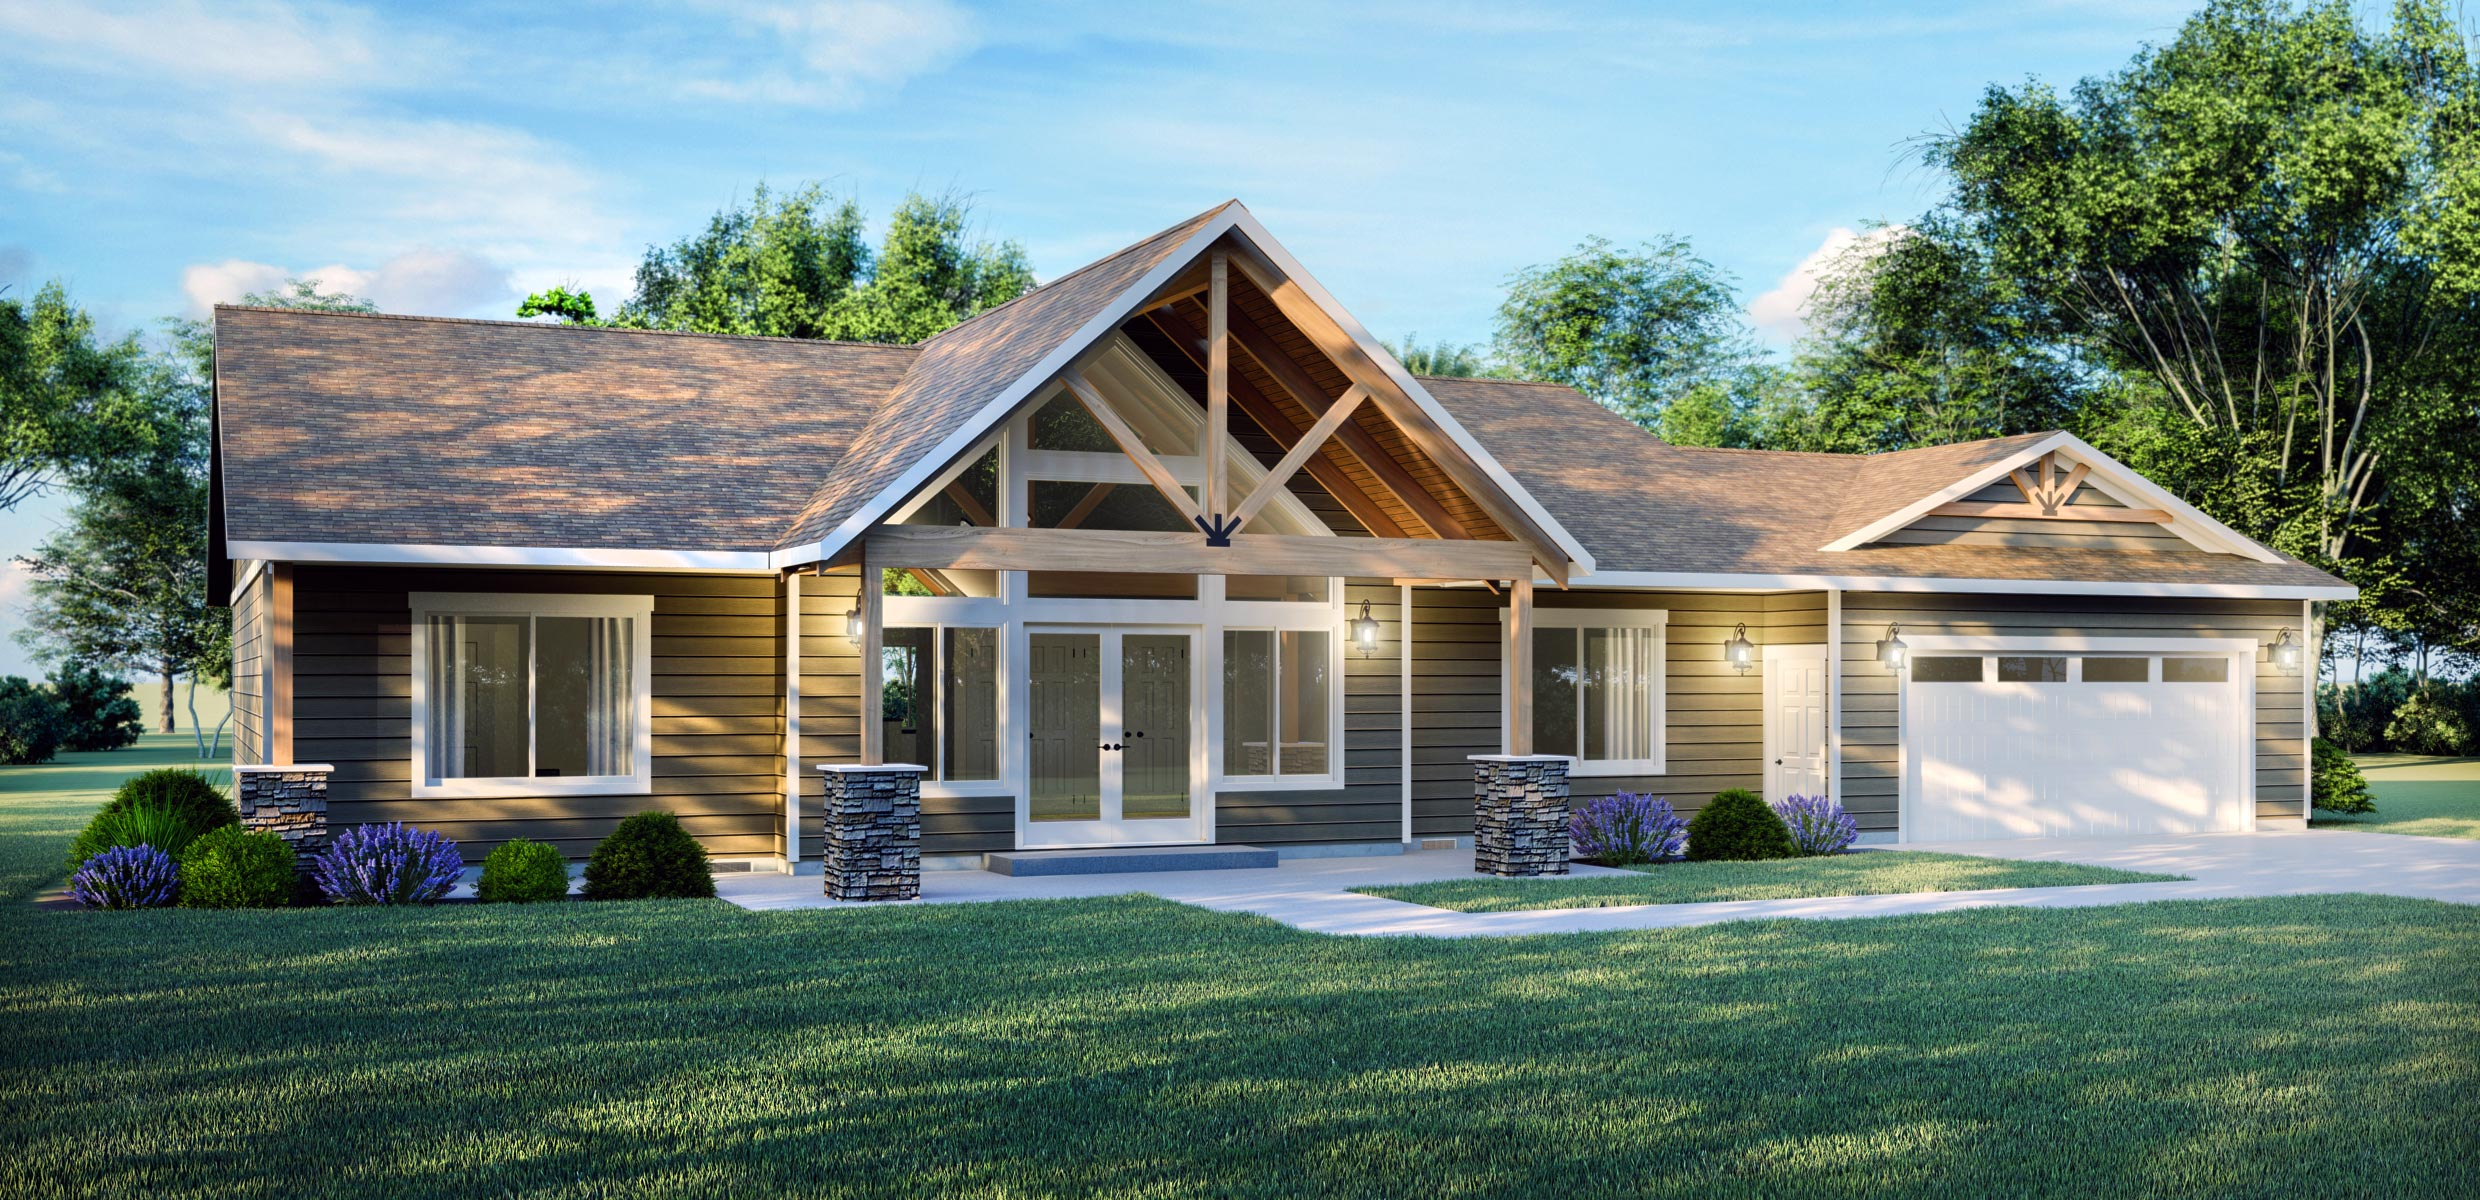 SUMMIT Floor Plan | Signature Collection | Lexar Home on 1920s small houses, 1920s art, 1920s flooring, 1920s magazines, 1920s wisconsin farmhouse front porch, 1920s schoolhouse, 1920s building, small historic home plans, 1920s cleaning, 1920s fireplace mantel, 1920s design, 1920s furniture, 1920s business, 1920s education, 1920s farmhouse living room, 1920s photography, 1920s travel, 1920s new york luxury apartments, 1920s windows, 1920s architecture,